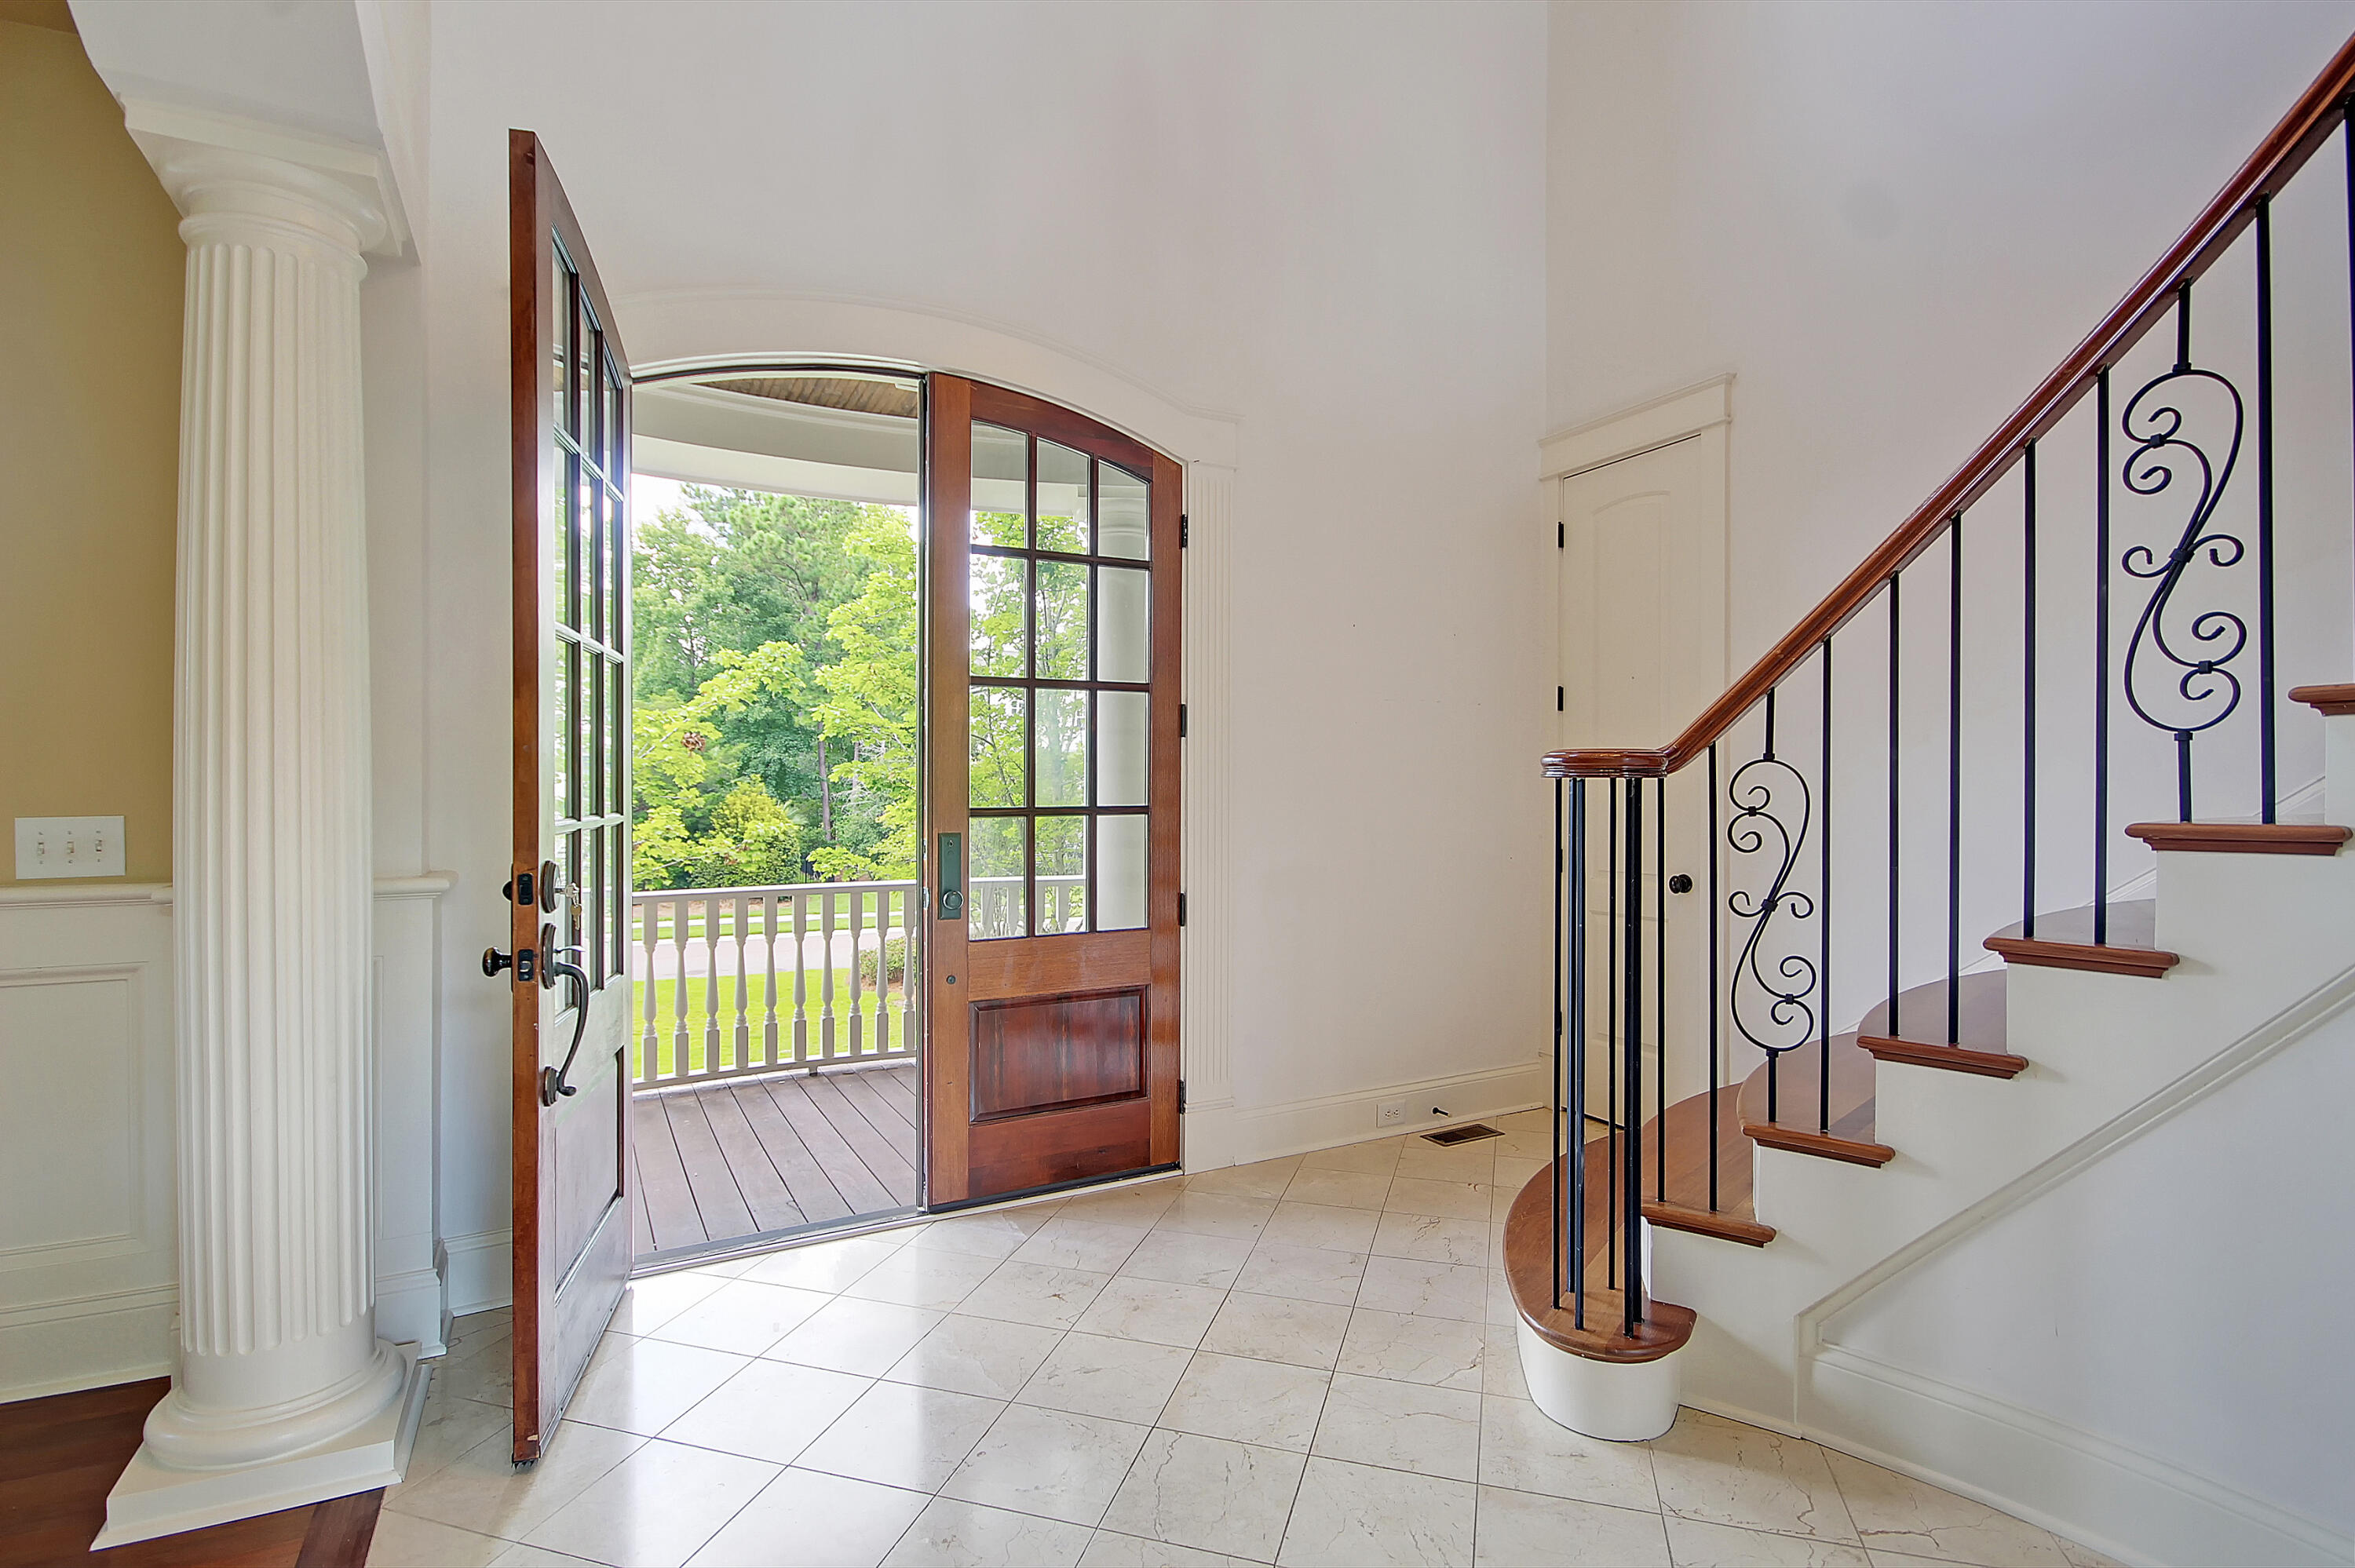 Rivertowne Country Club Homes For Sale - 1632 Rivertowne Country Club, Mount Pleasant, SC - 40